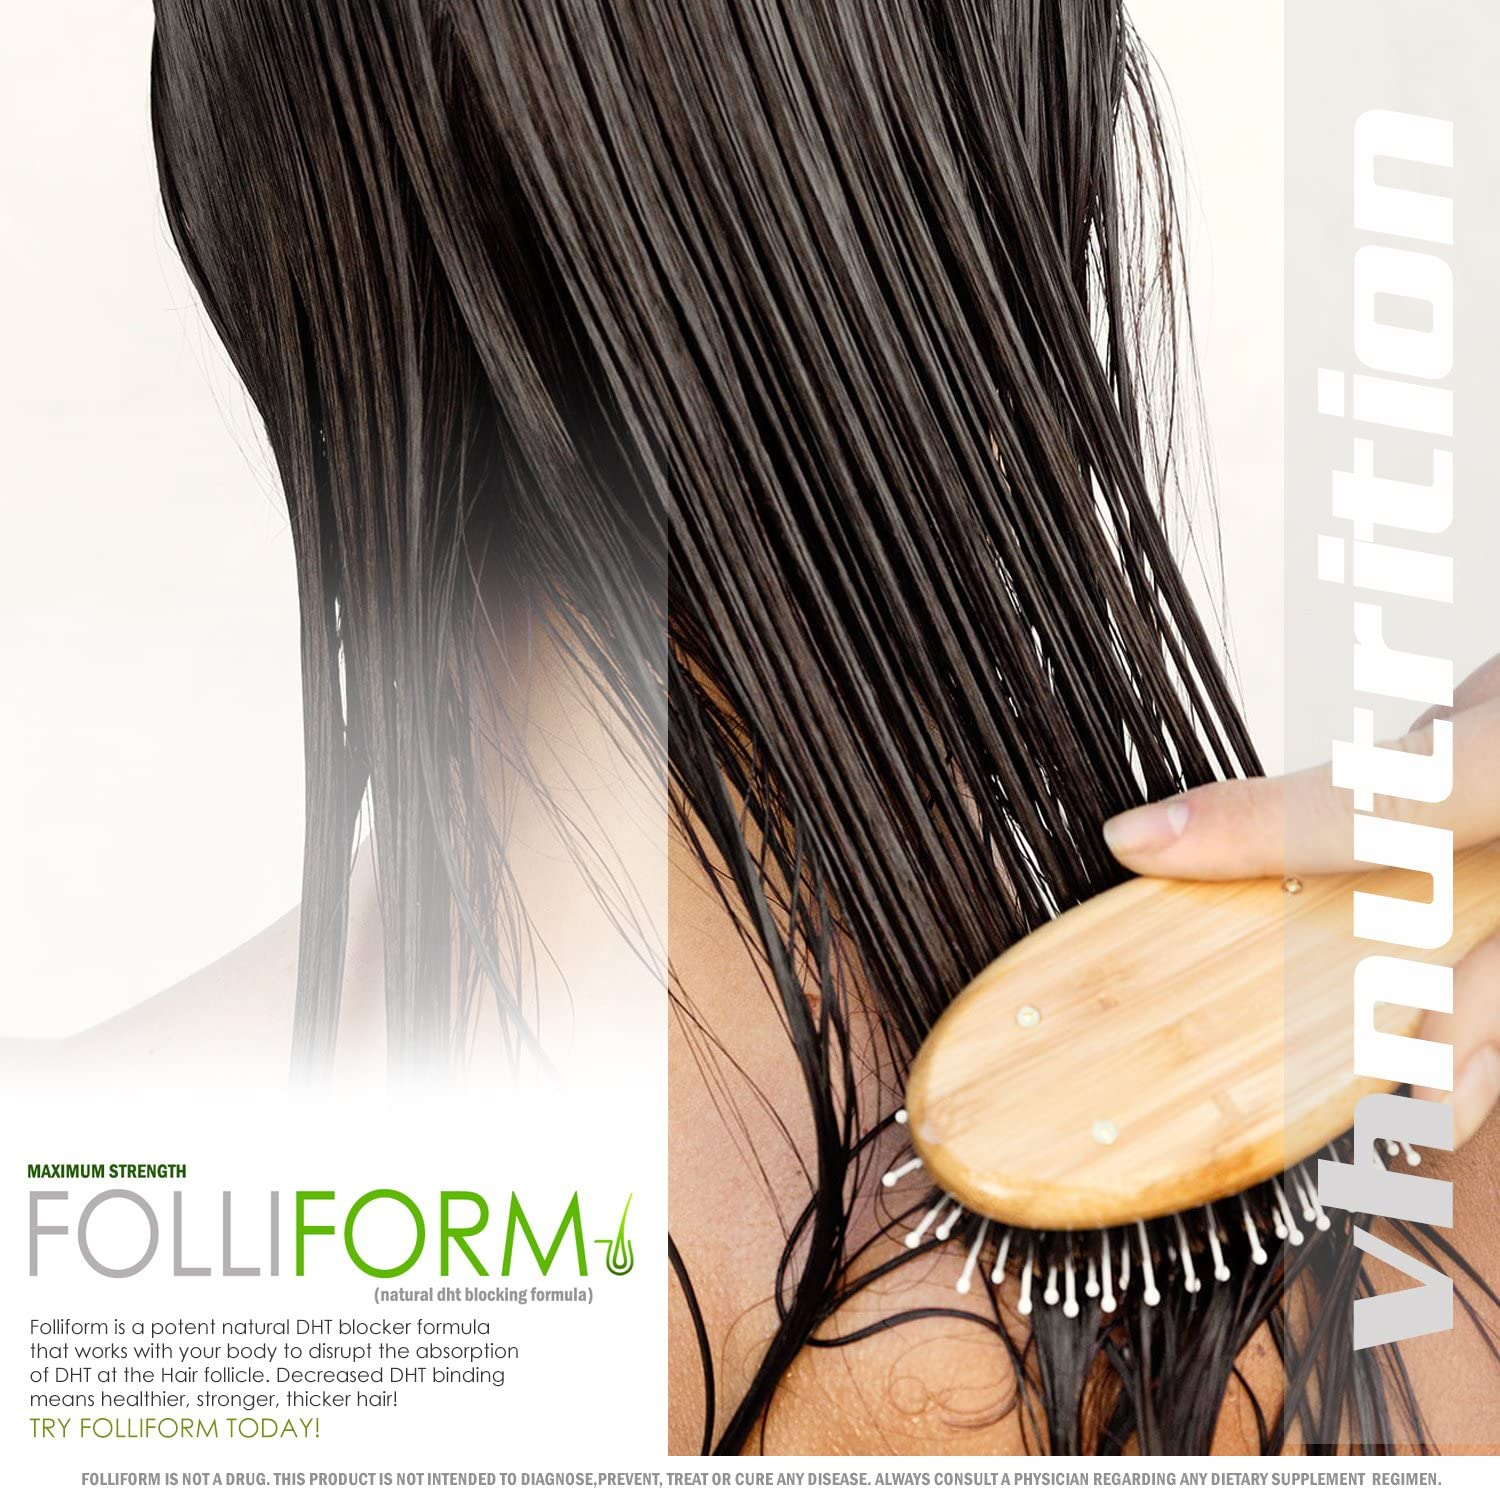 Hair loss root palmetto nettle pygeum saw Pygeum Africanum